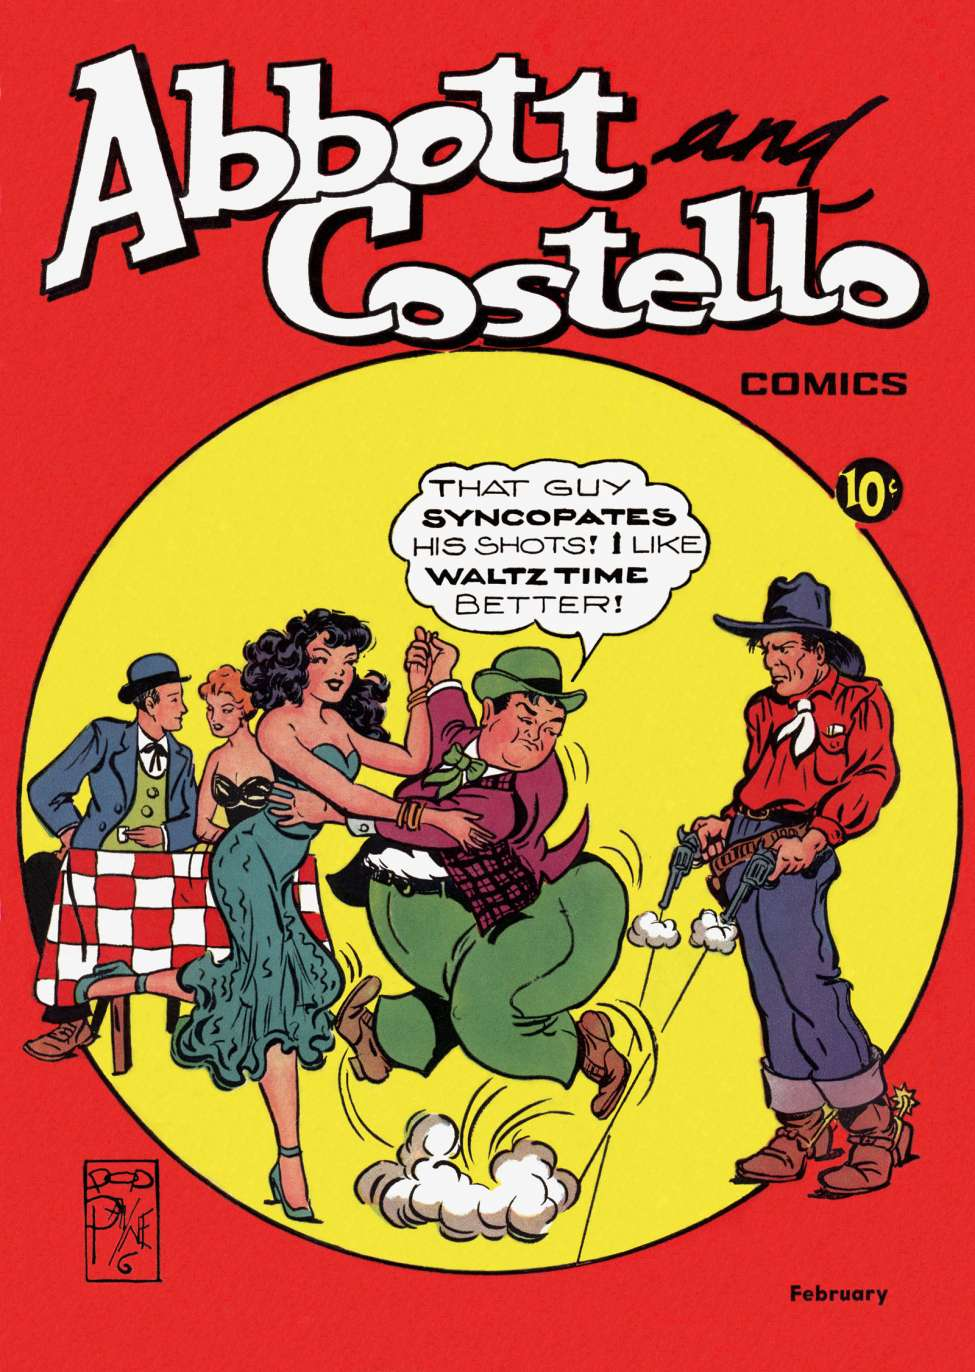 Comic Book Cover For Abbott and Costello Comics #12